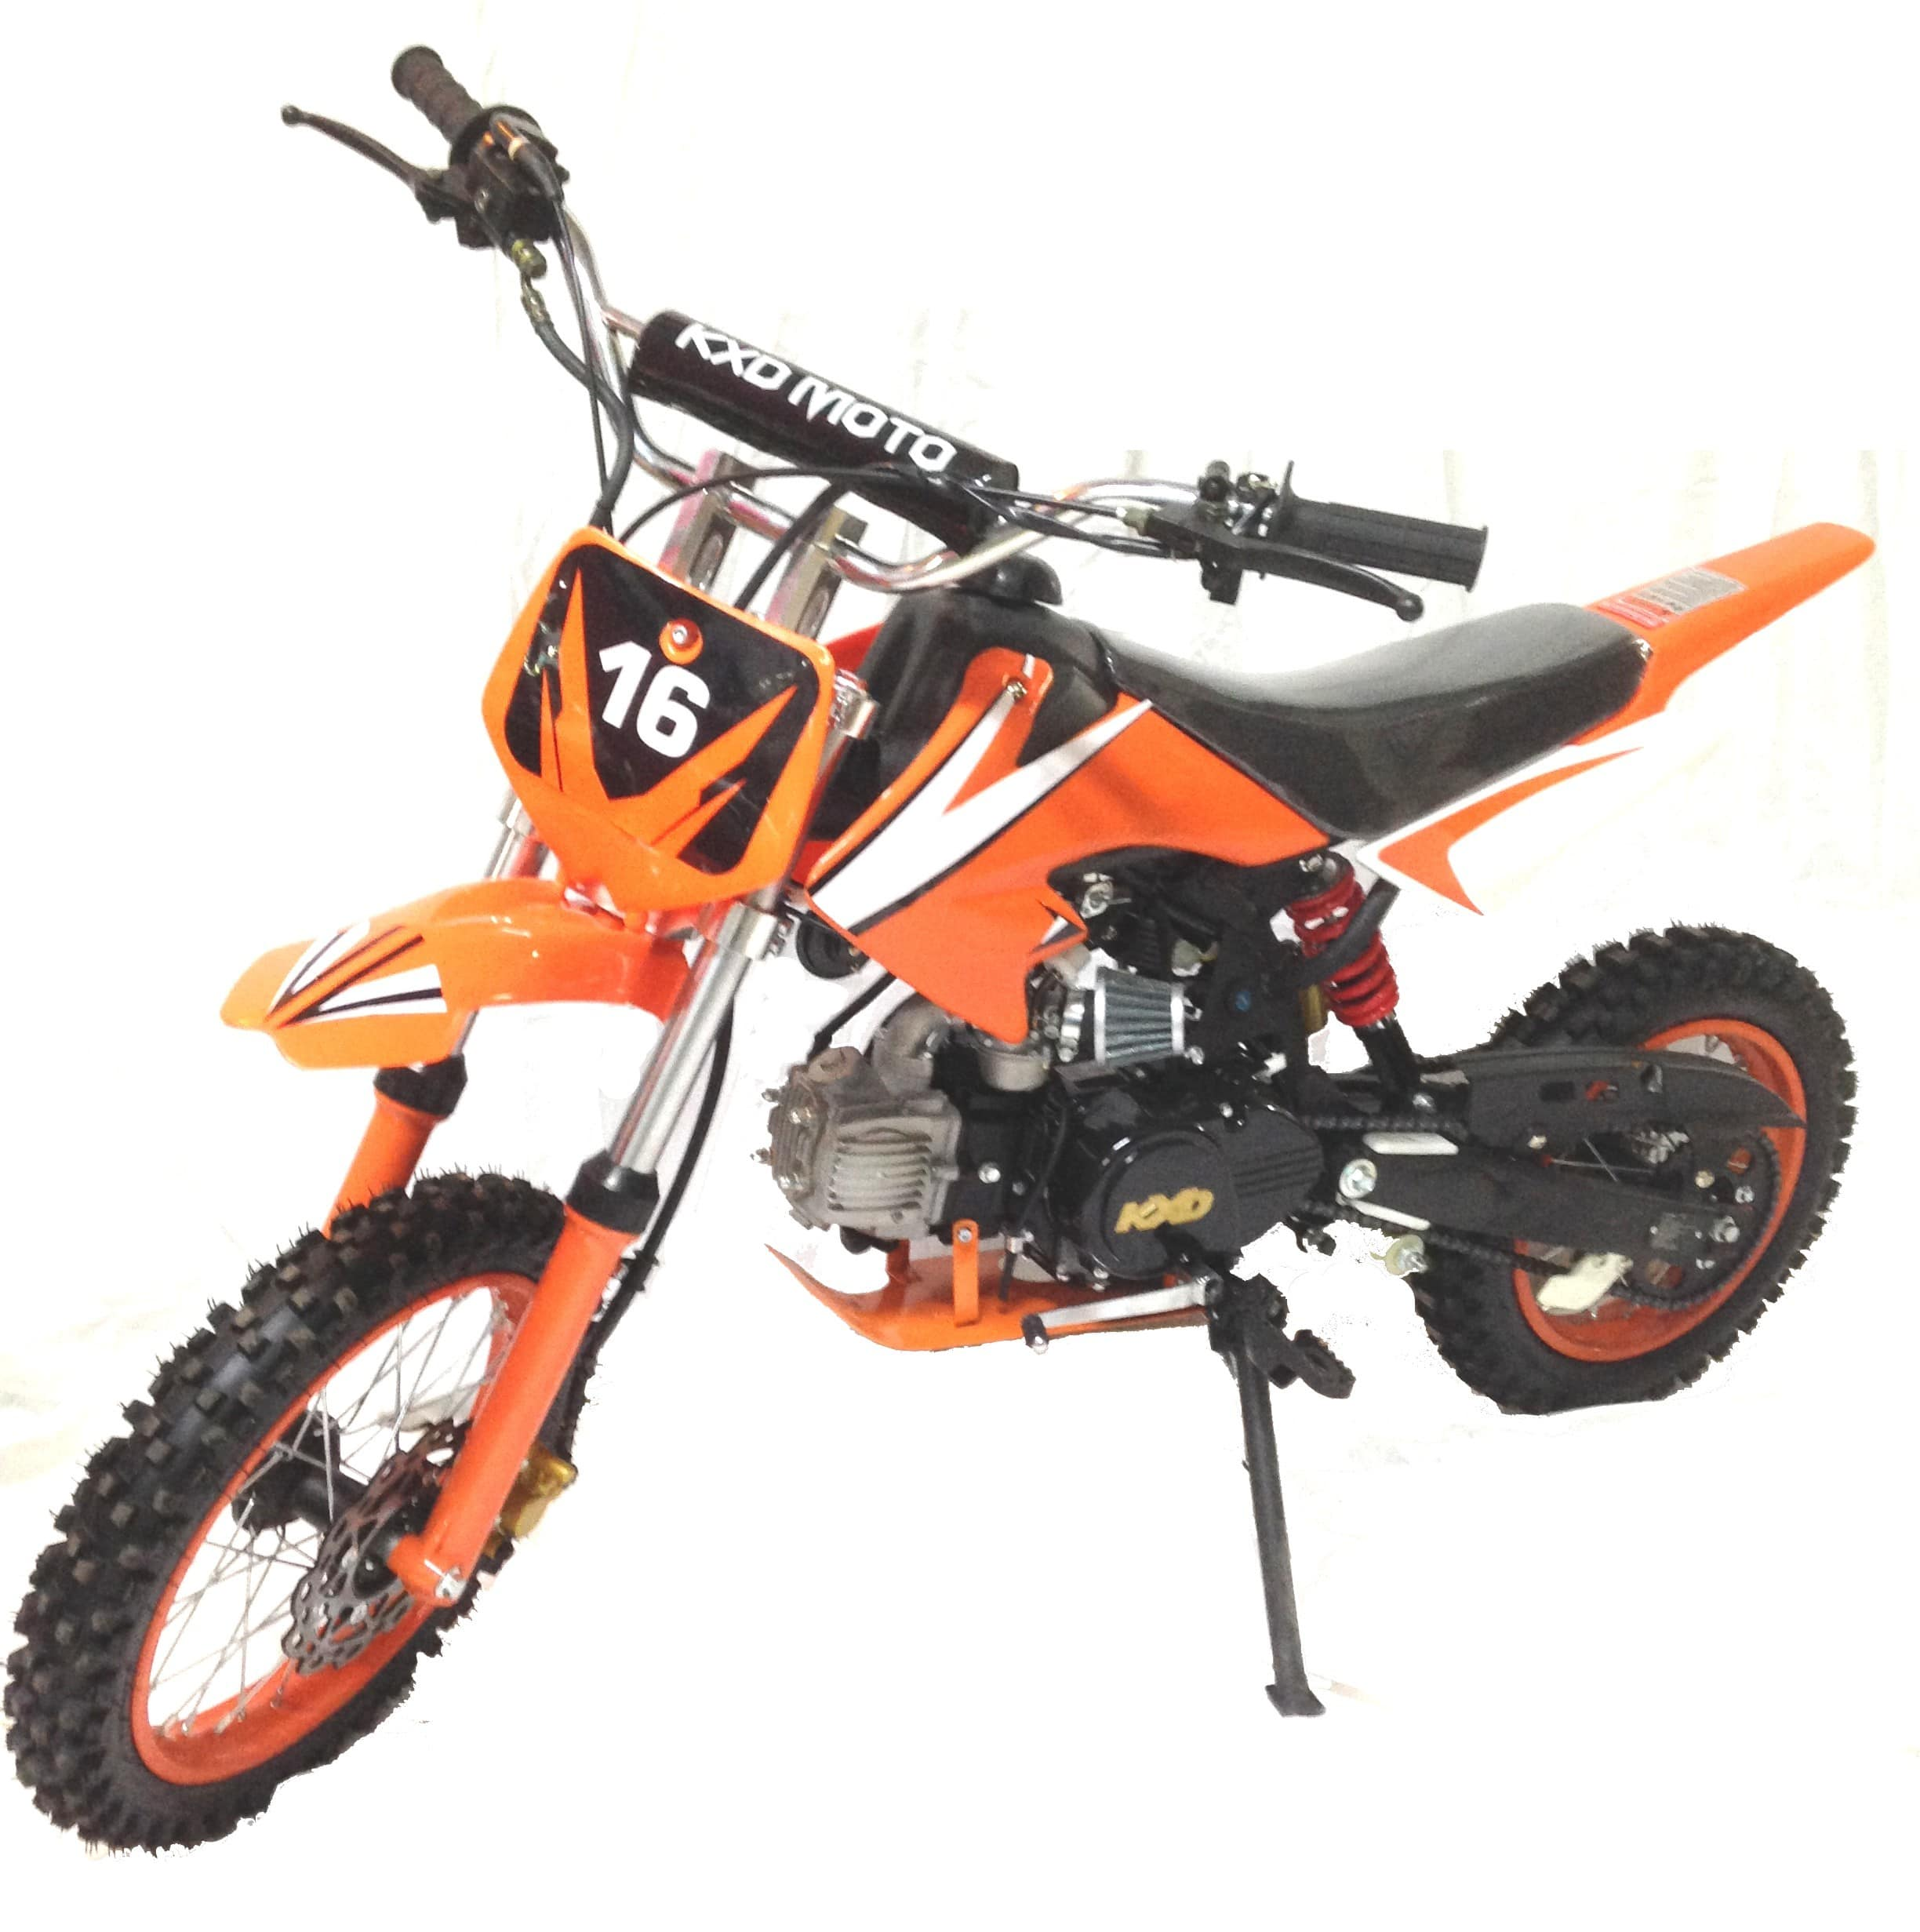 moto cross 125 prix prix moto cross 125 neuve cantalamoto moto cross dirt bike 125cc orange. Black Bedroom Furniture Sets. Home Design Ideas